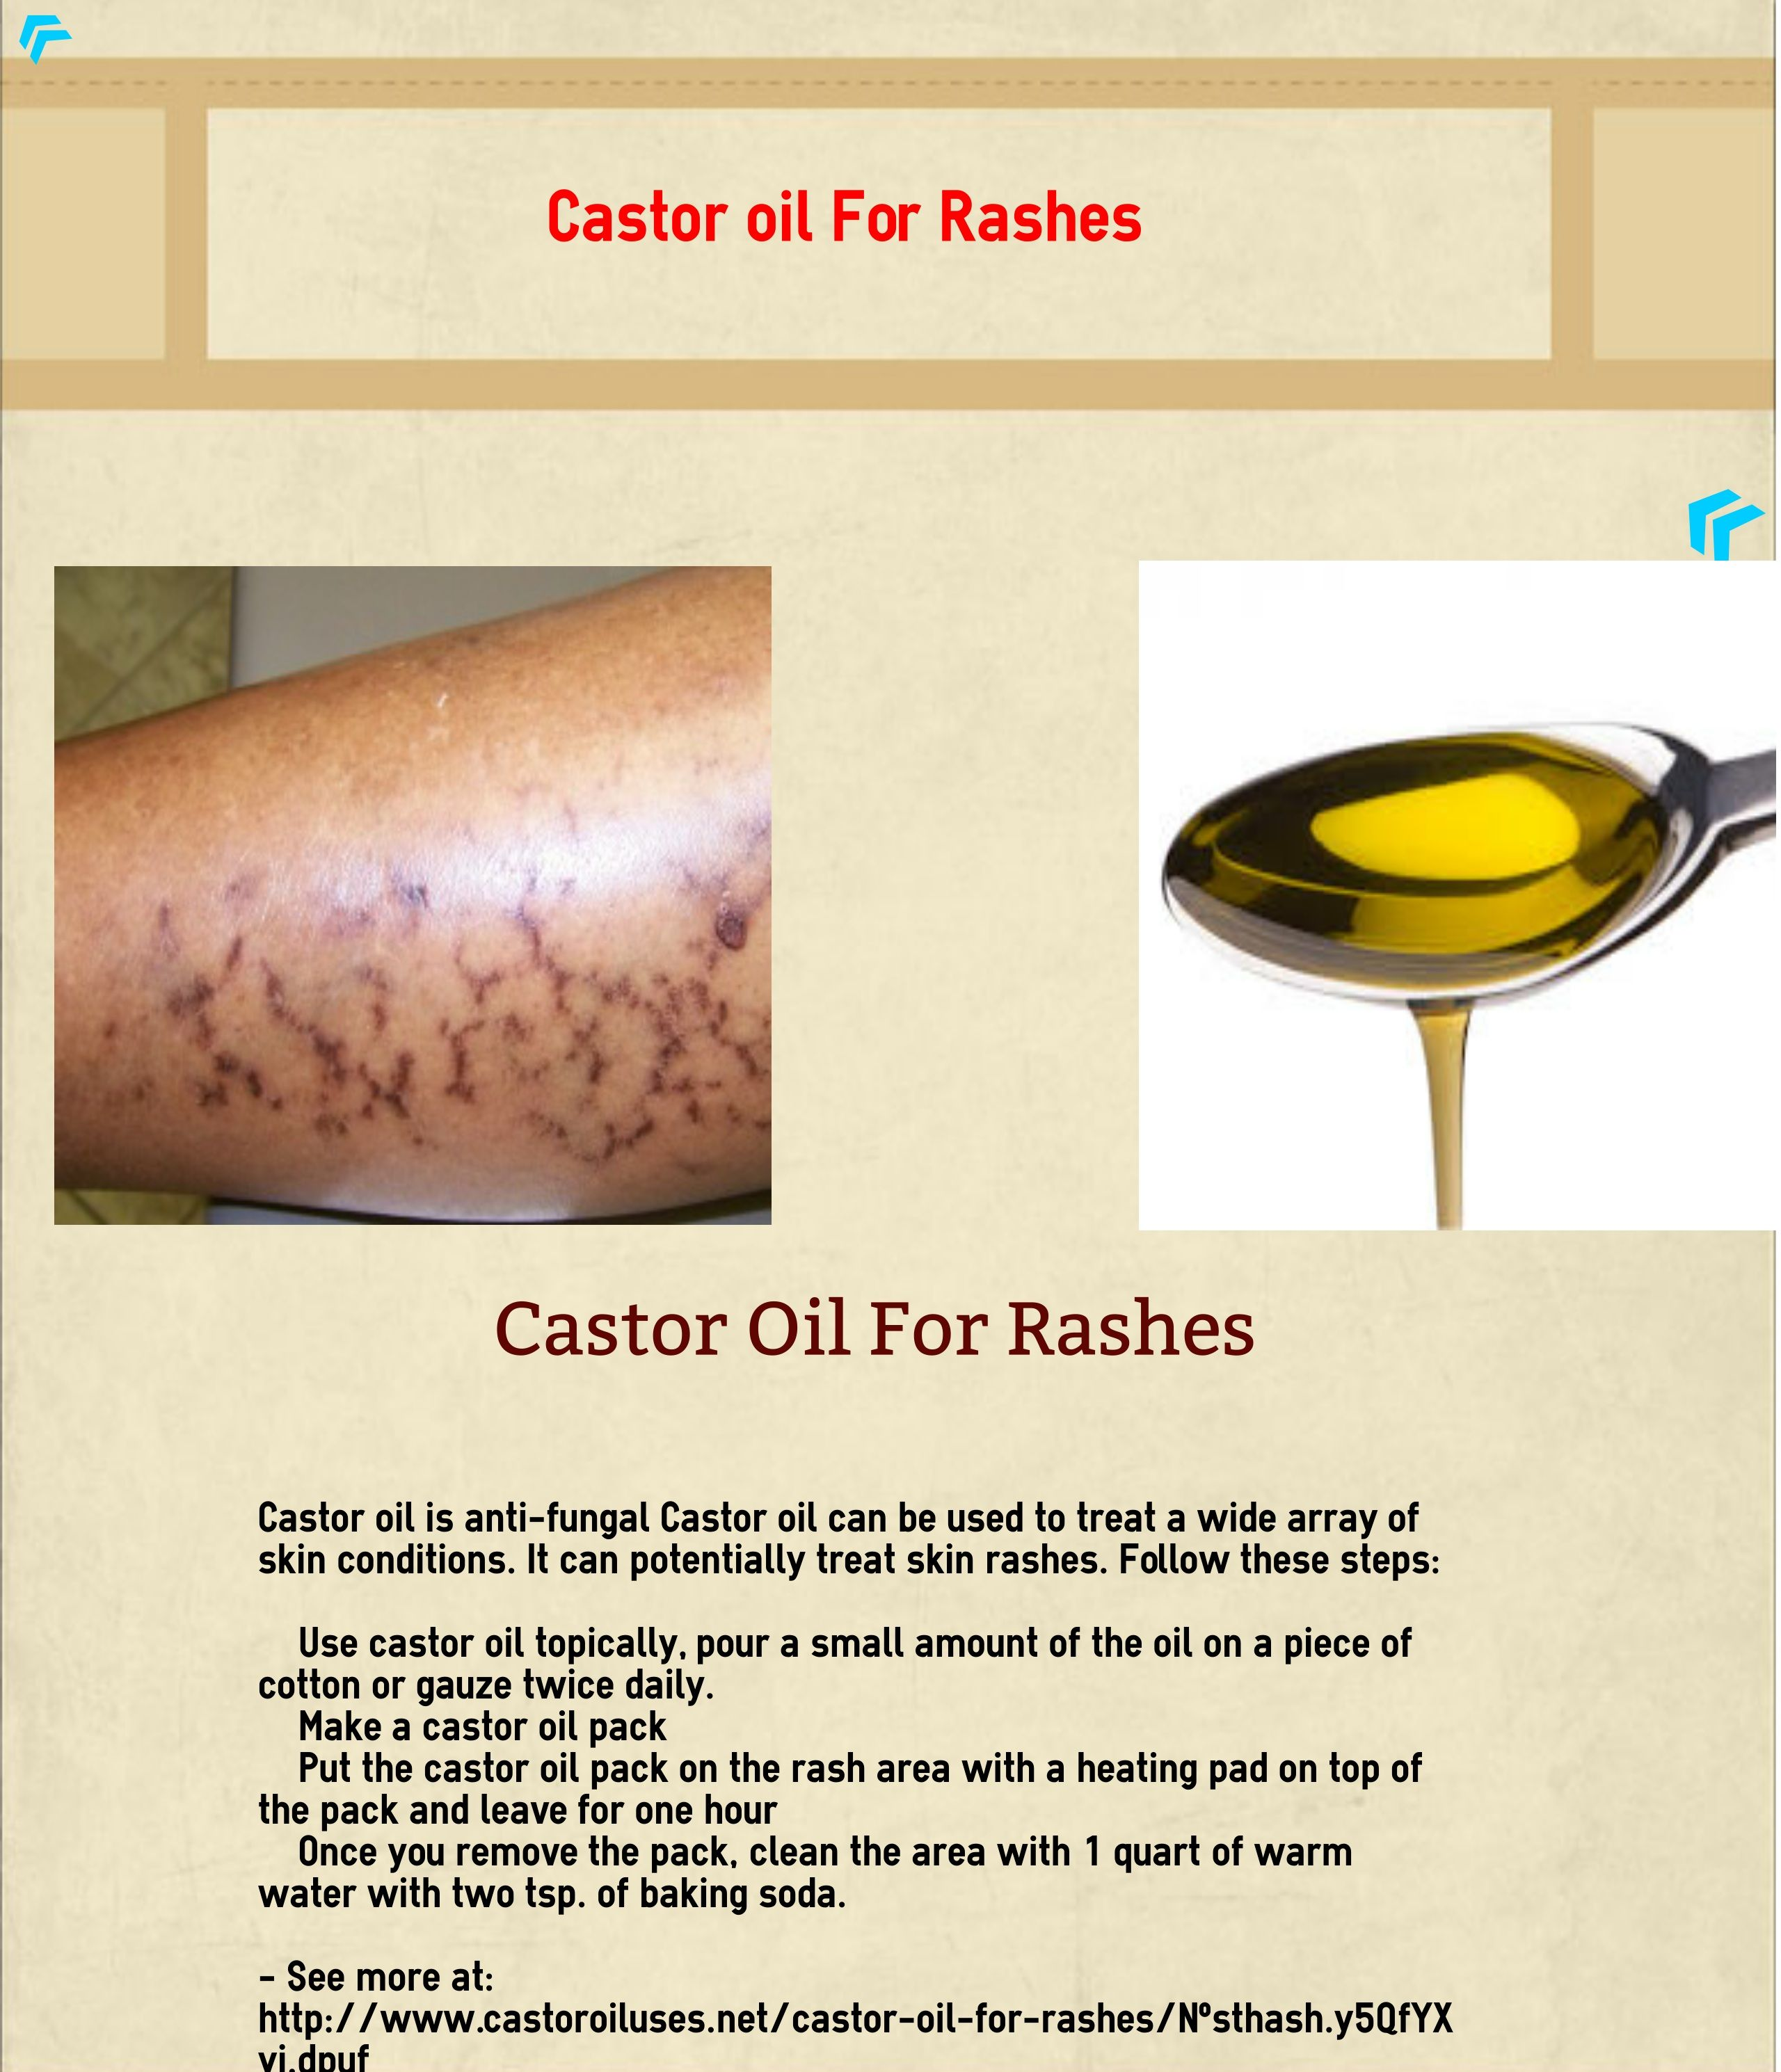 castor oil for rashes learn how to treat rashes with castor oi  [ 2560 x 2979 Pixel ]